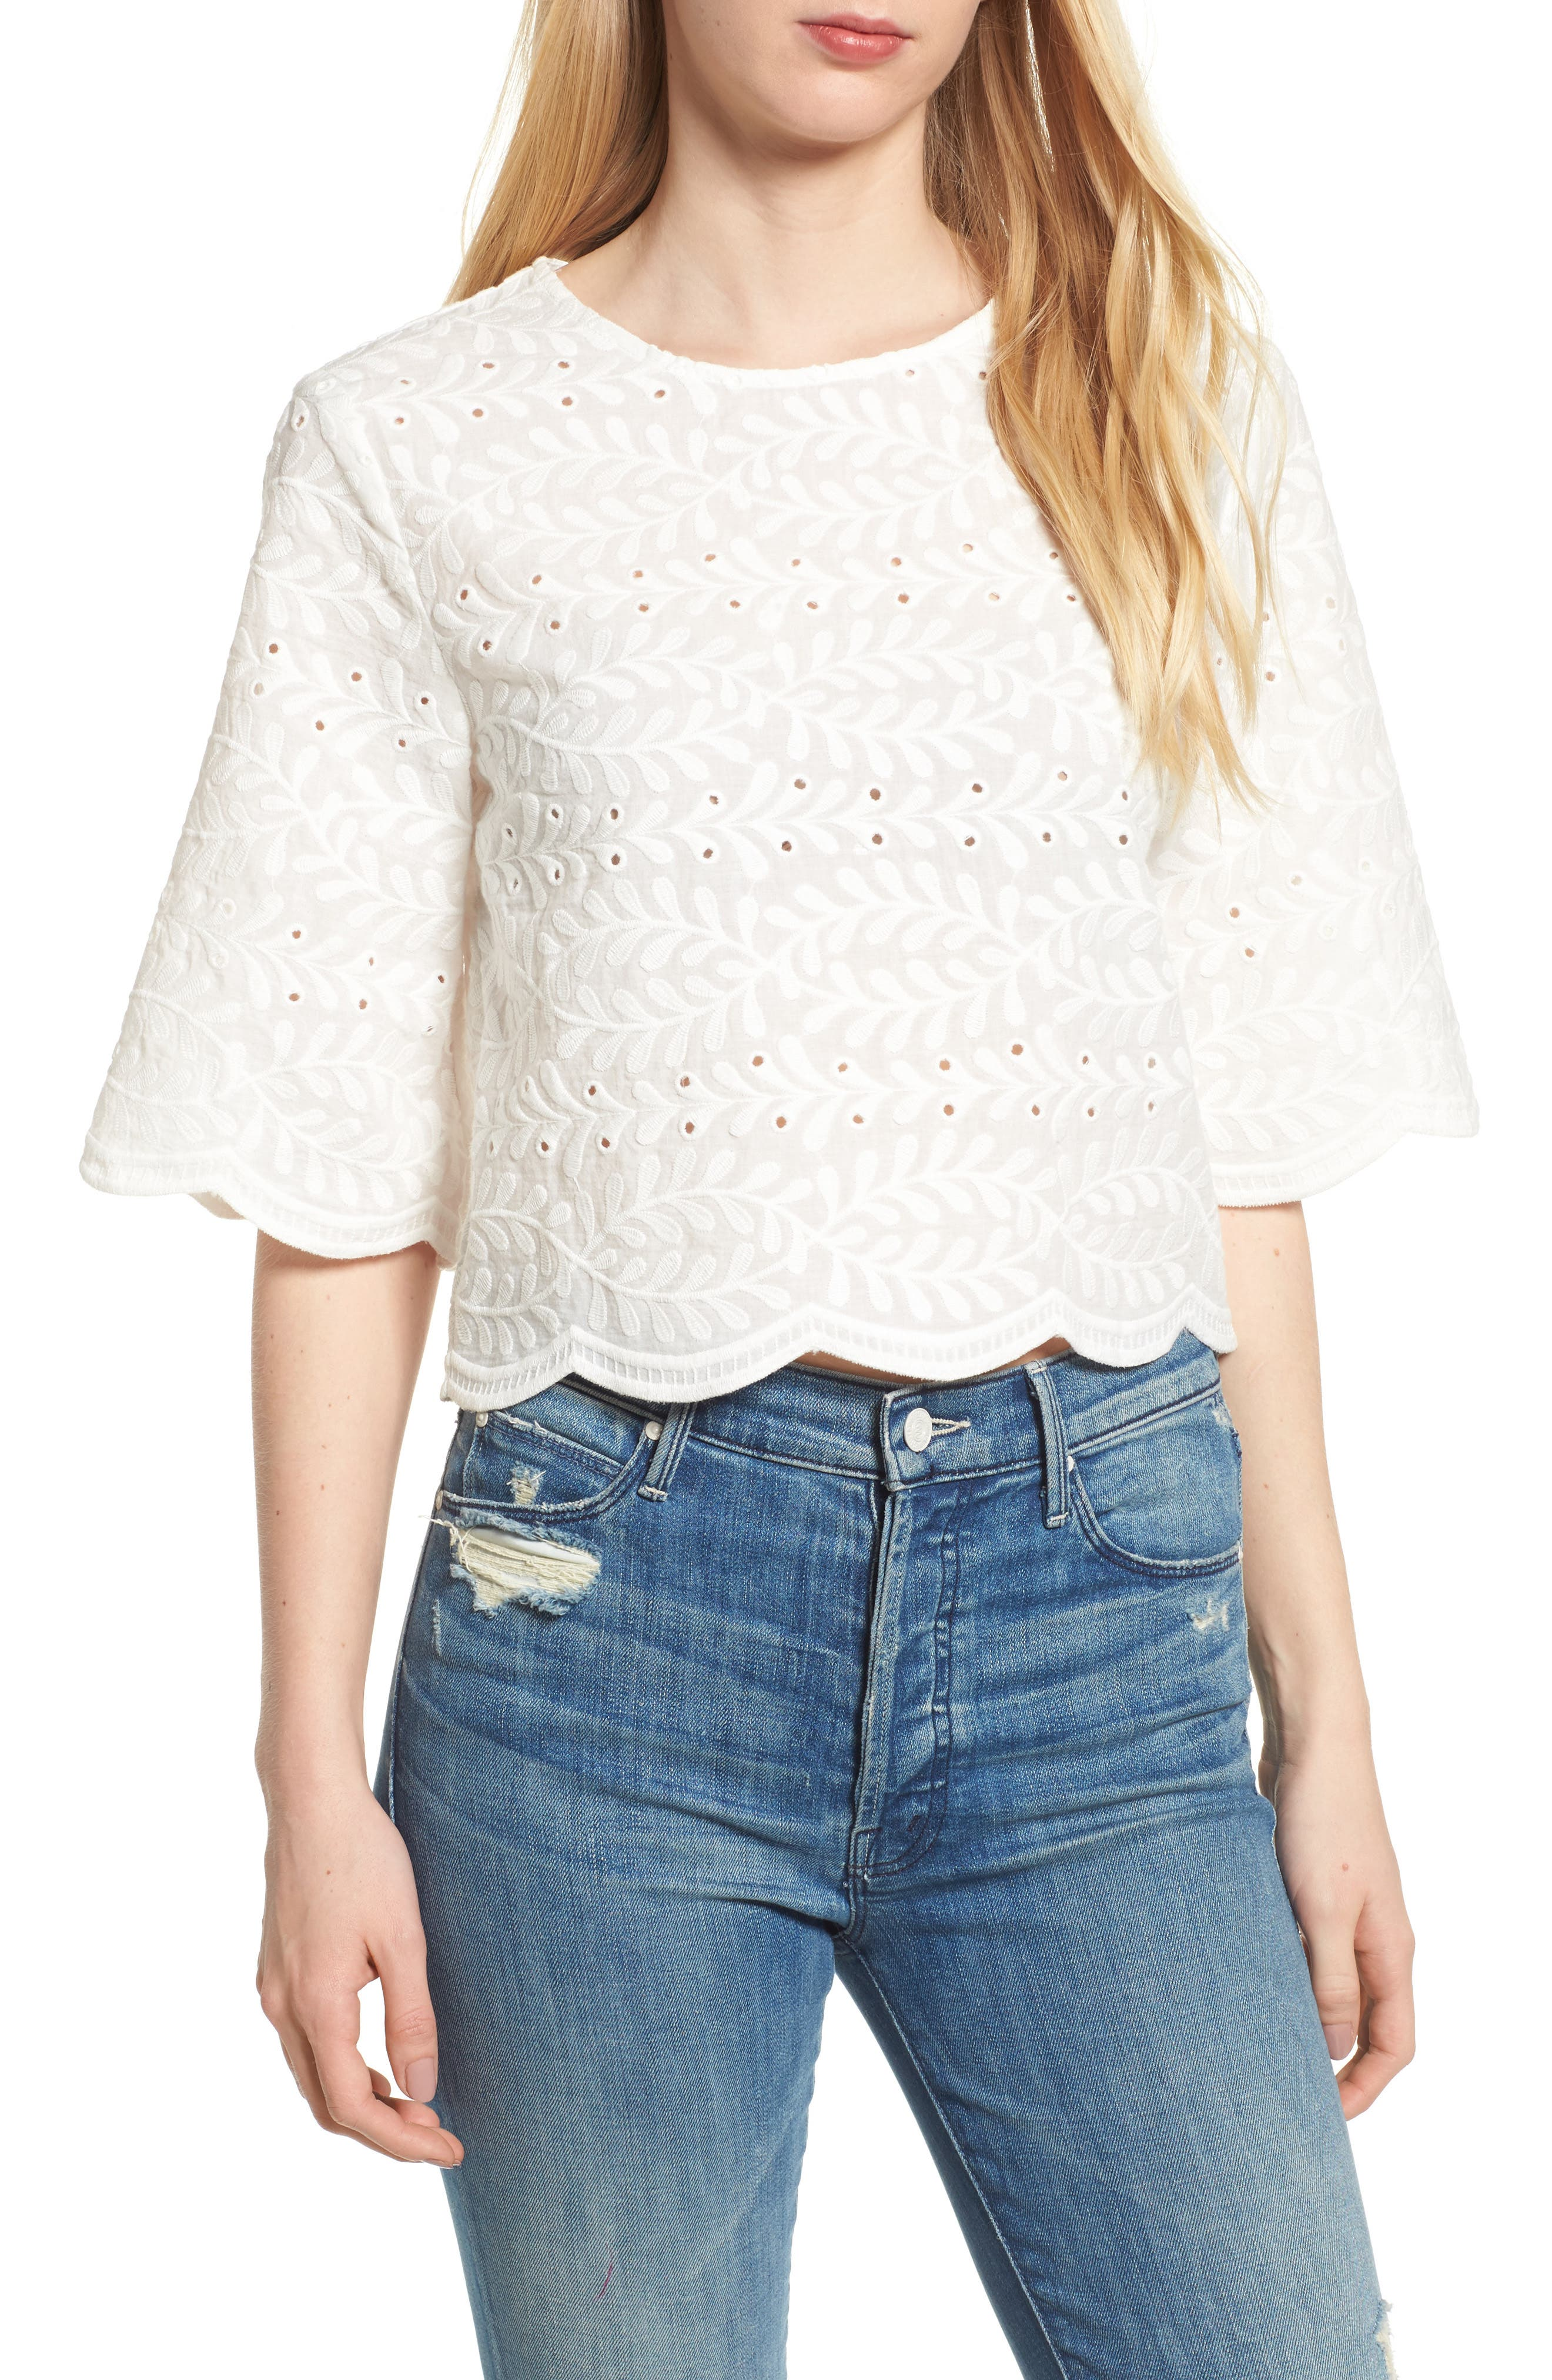 Main Image - Bishop + Young Scallop Edge Blouse